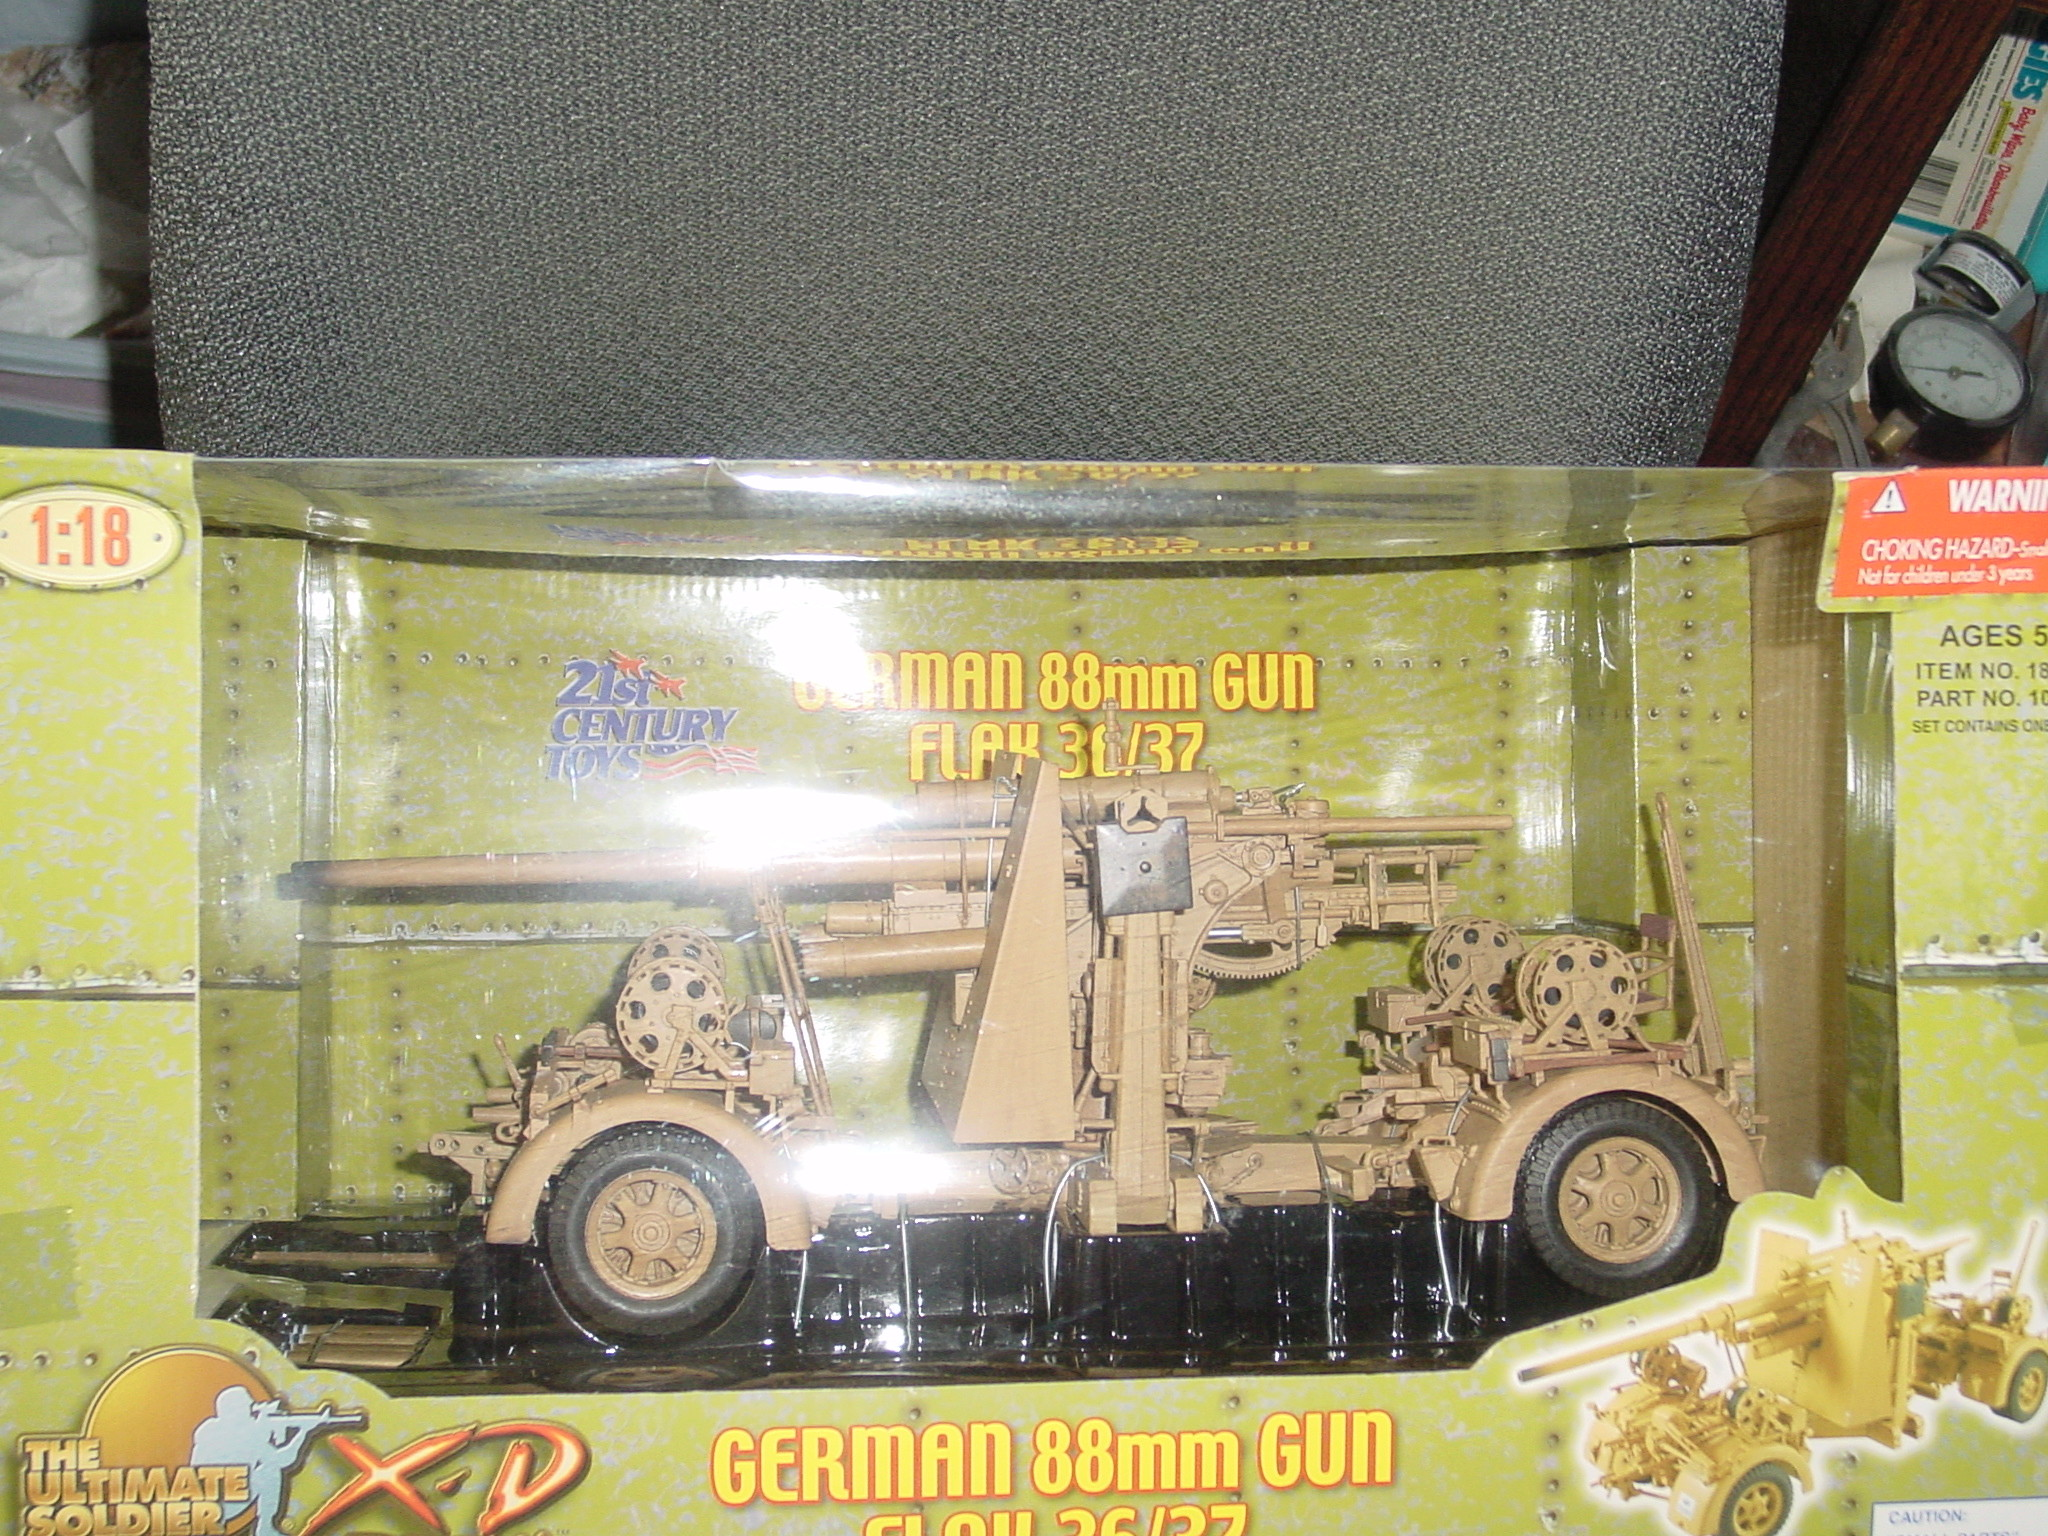 1/18 Ultimate Soldier German 88mm Gun Flak 36/37 Dsc00031